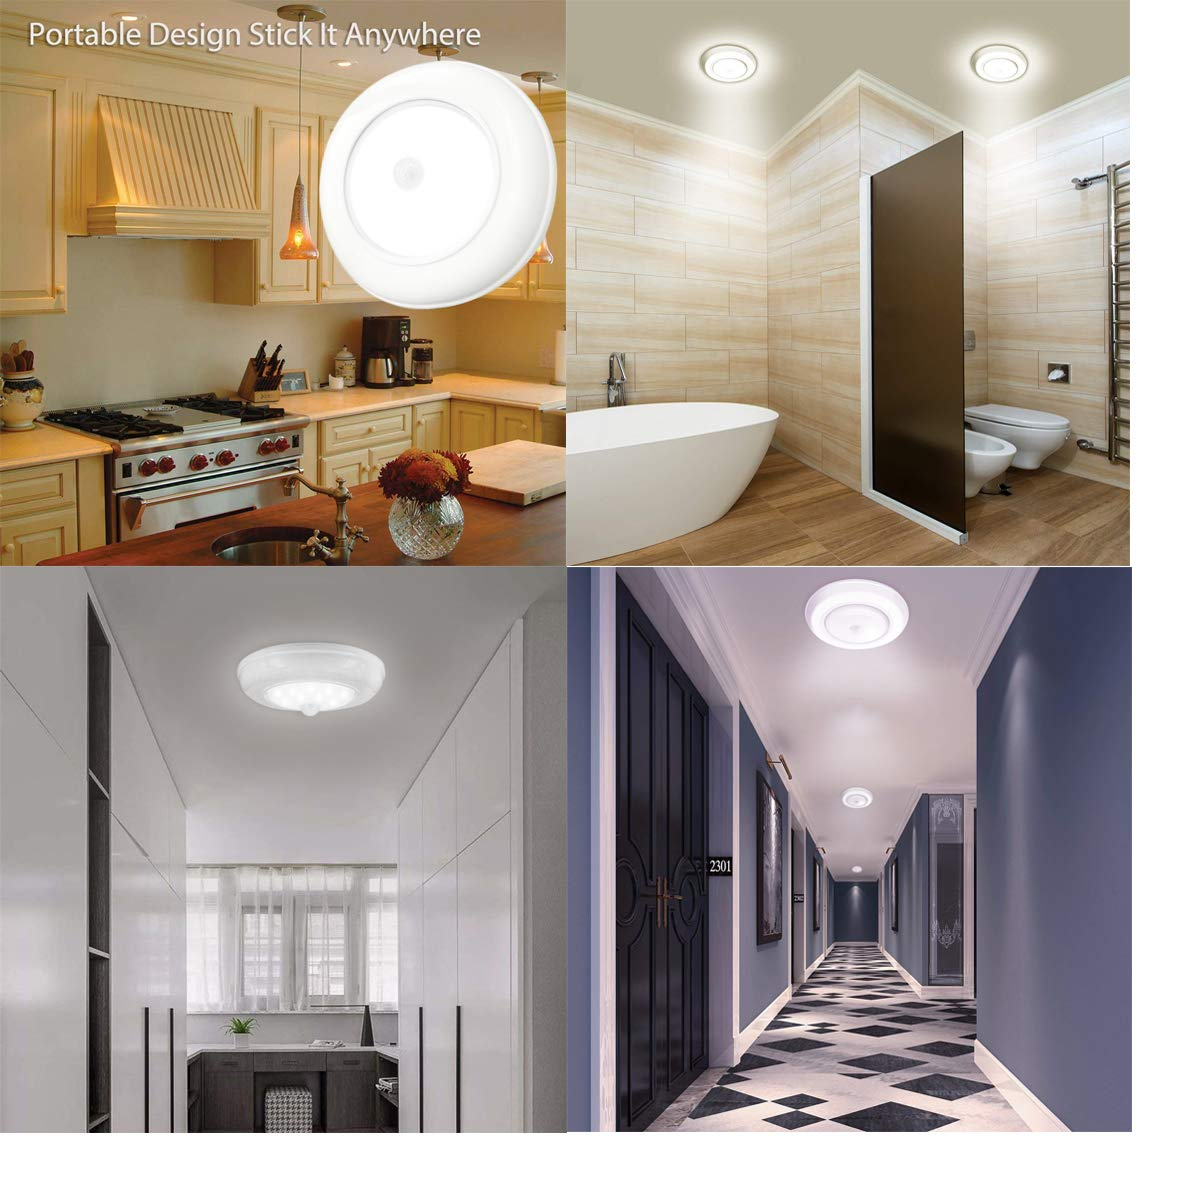 PIR Motion Sensor Activated LED Light Strip Wardrobe Cabinet Battery Operated